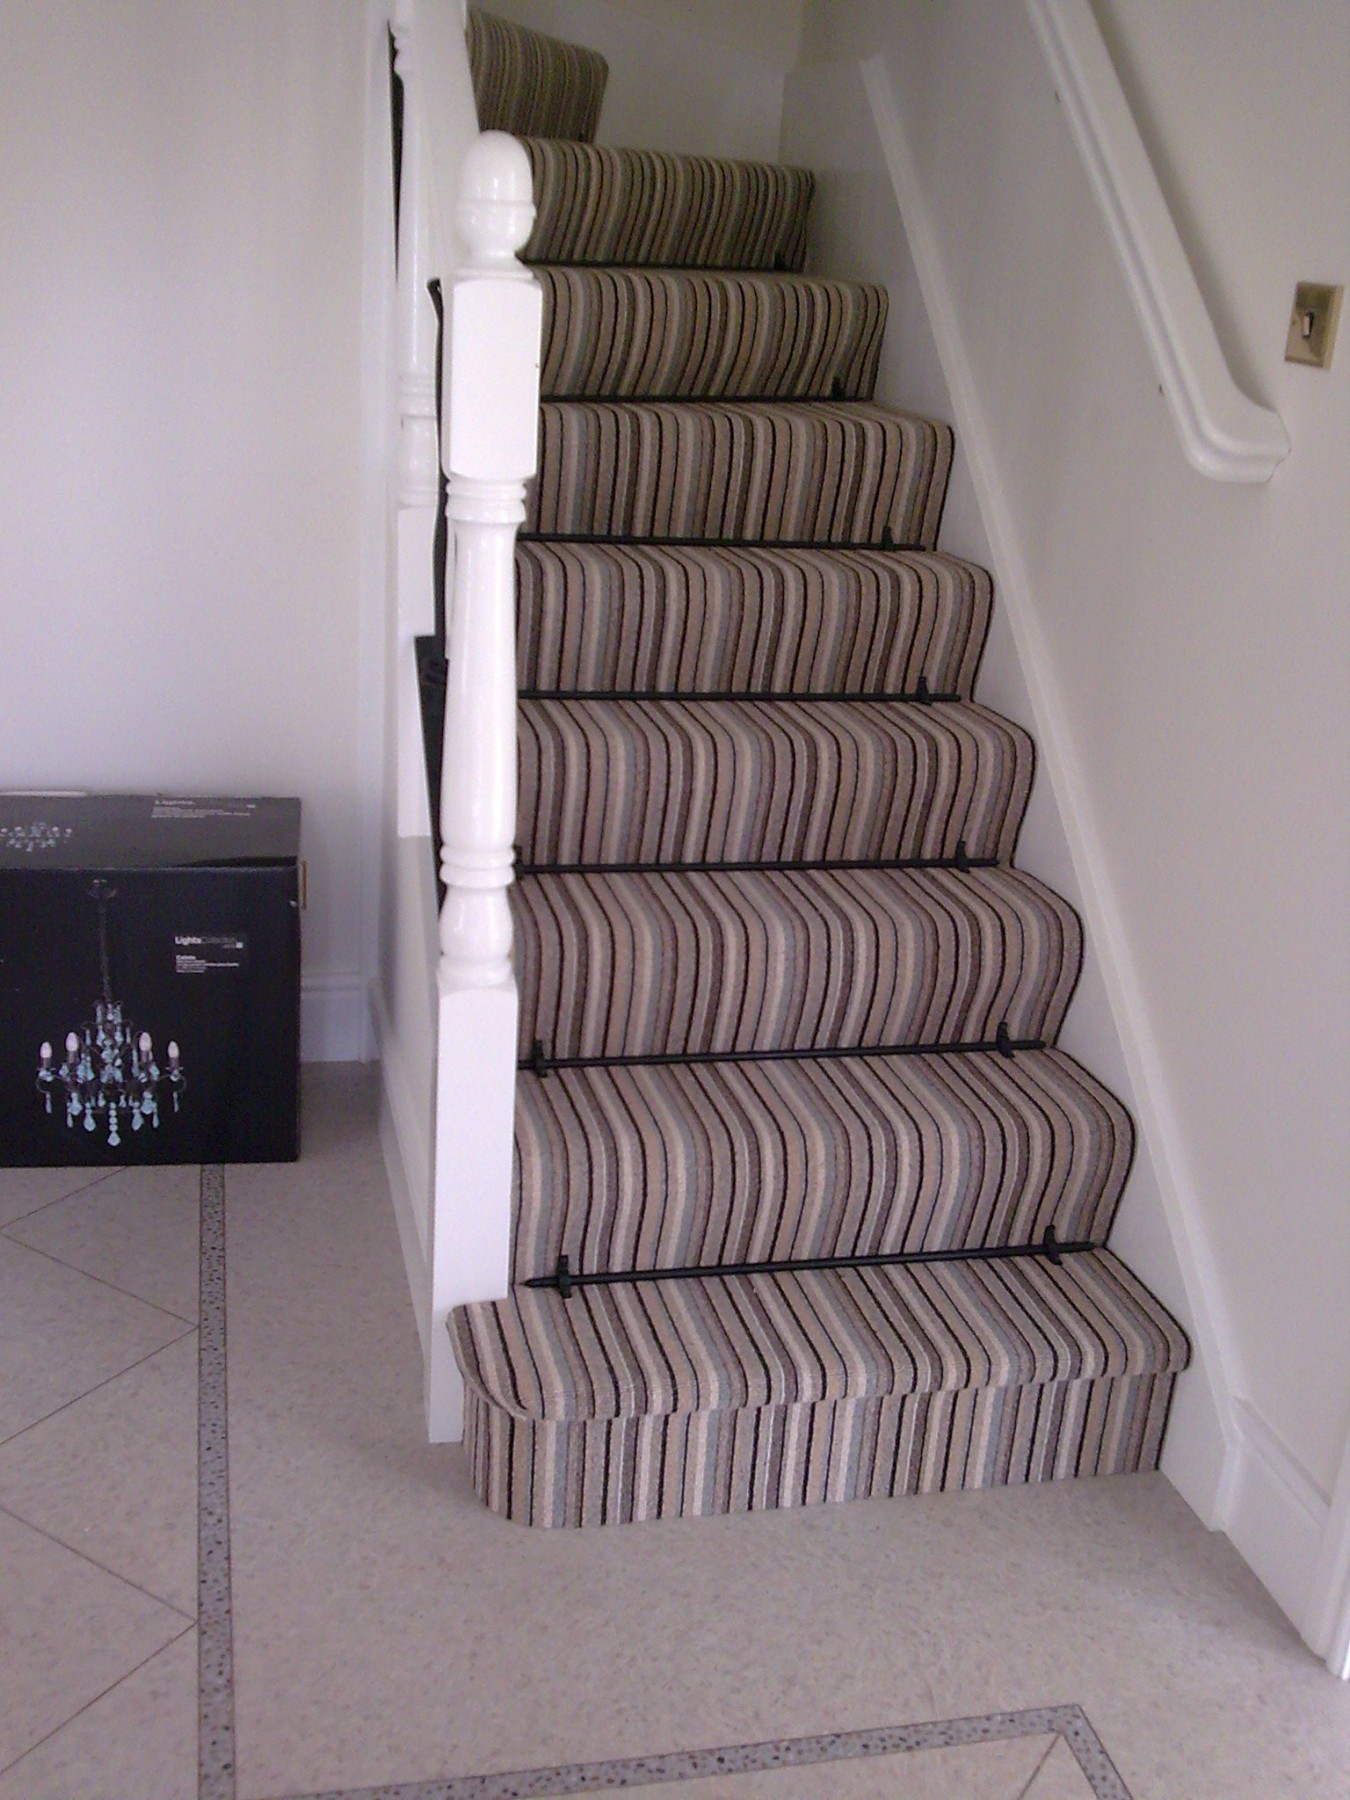 Staircase with striped carpet in a cream room